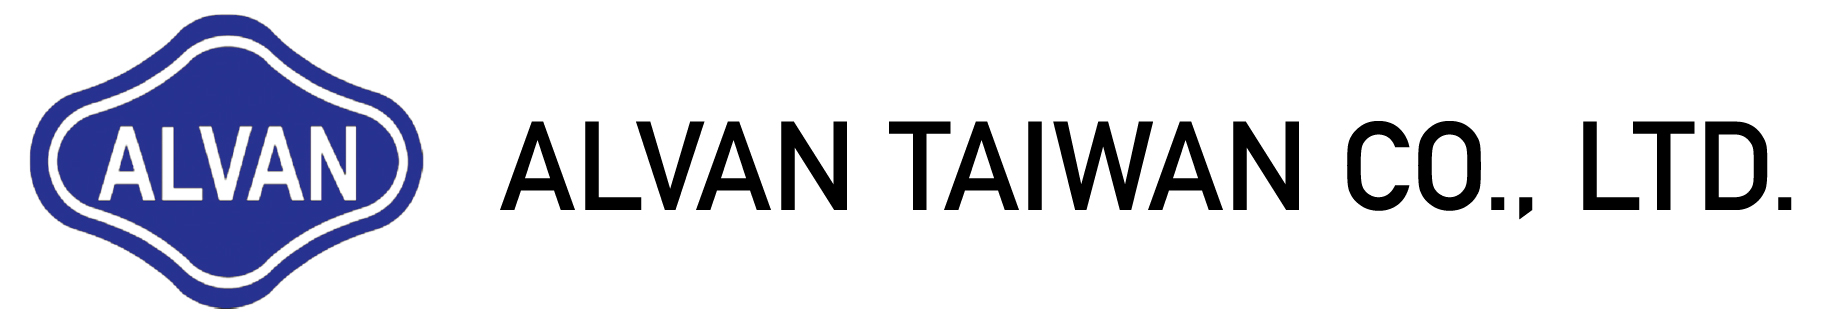 Alvan TAIWAN CO., LTD.